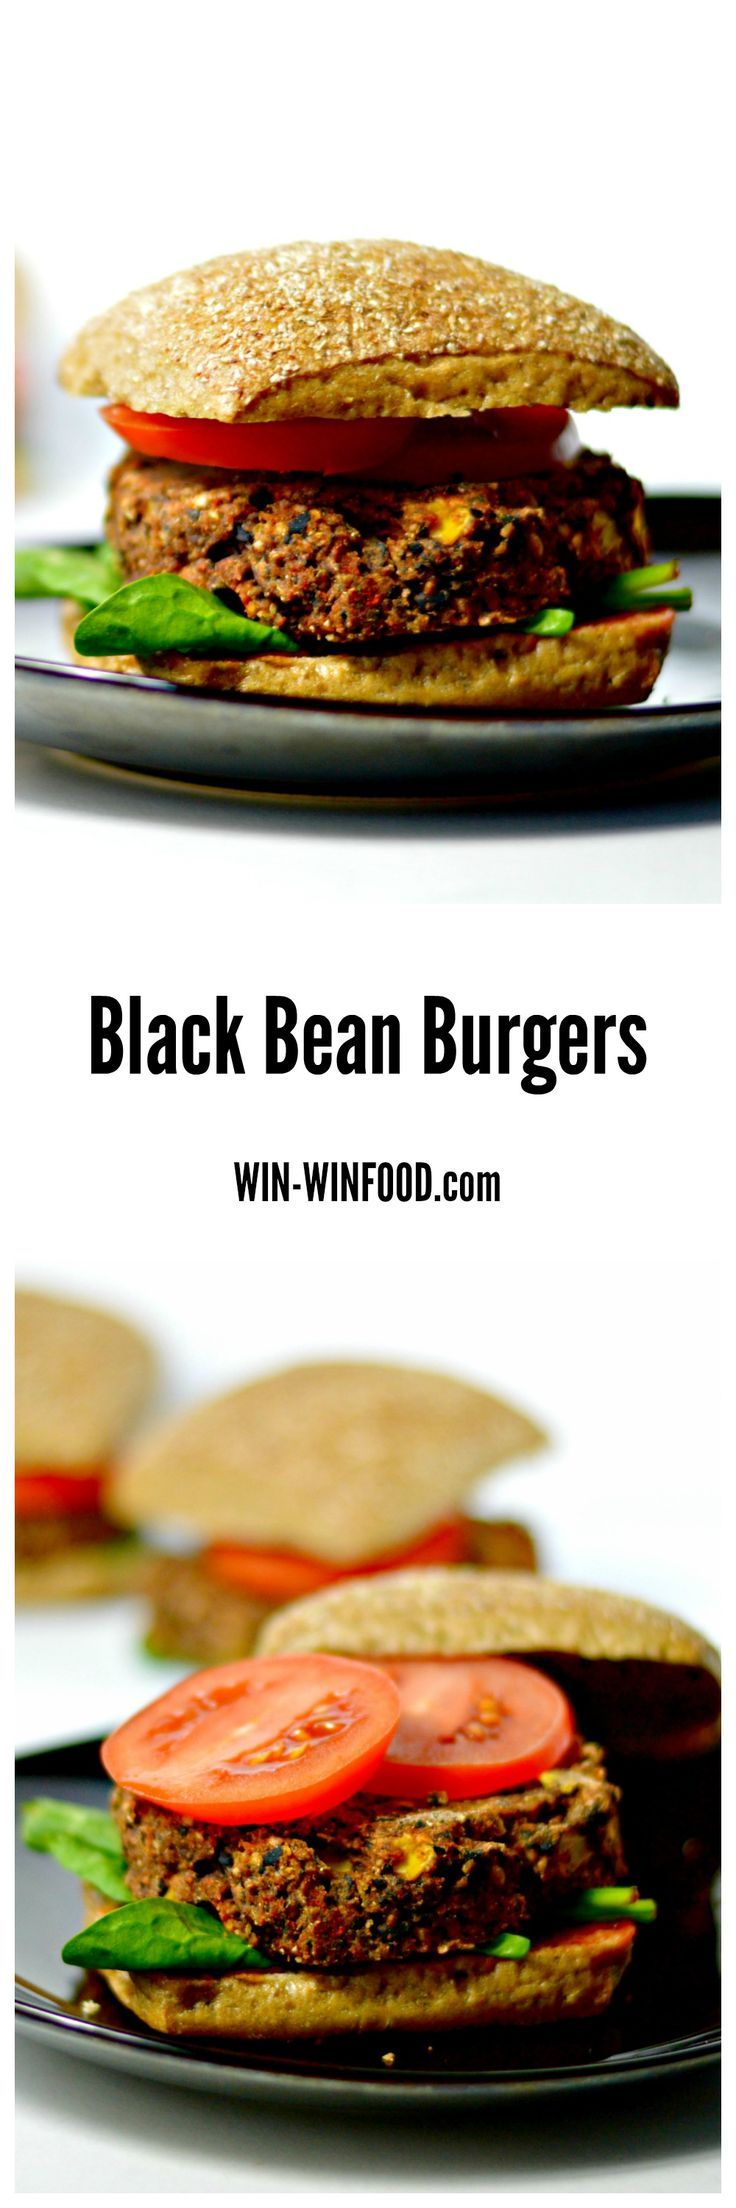 Black Bean Burgers | WIN-WINFOOD.com Crispy and slightly golden on the outside, chewy on the inside with the perfect blend of spiciness, smokiness and sweetness. #vegan #healthy #cleaneating #glutenfree option #soyfree